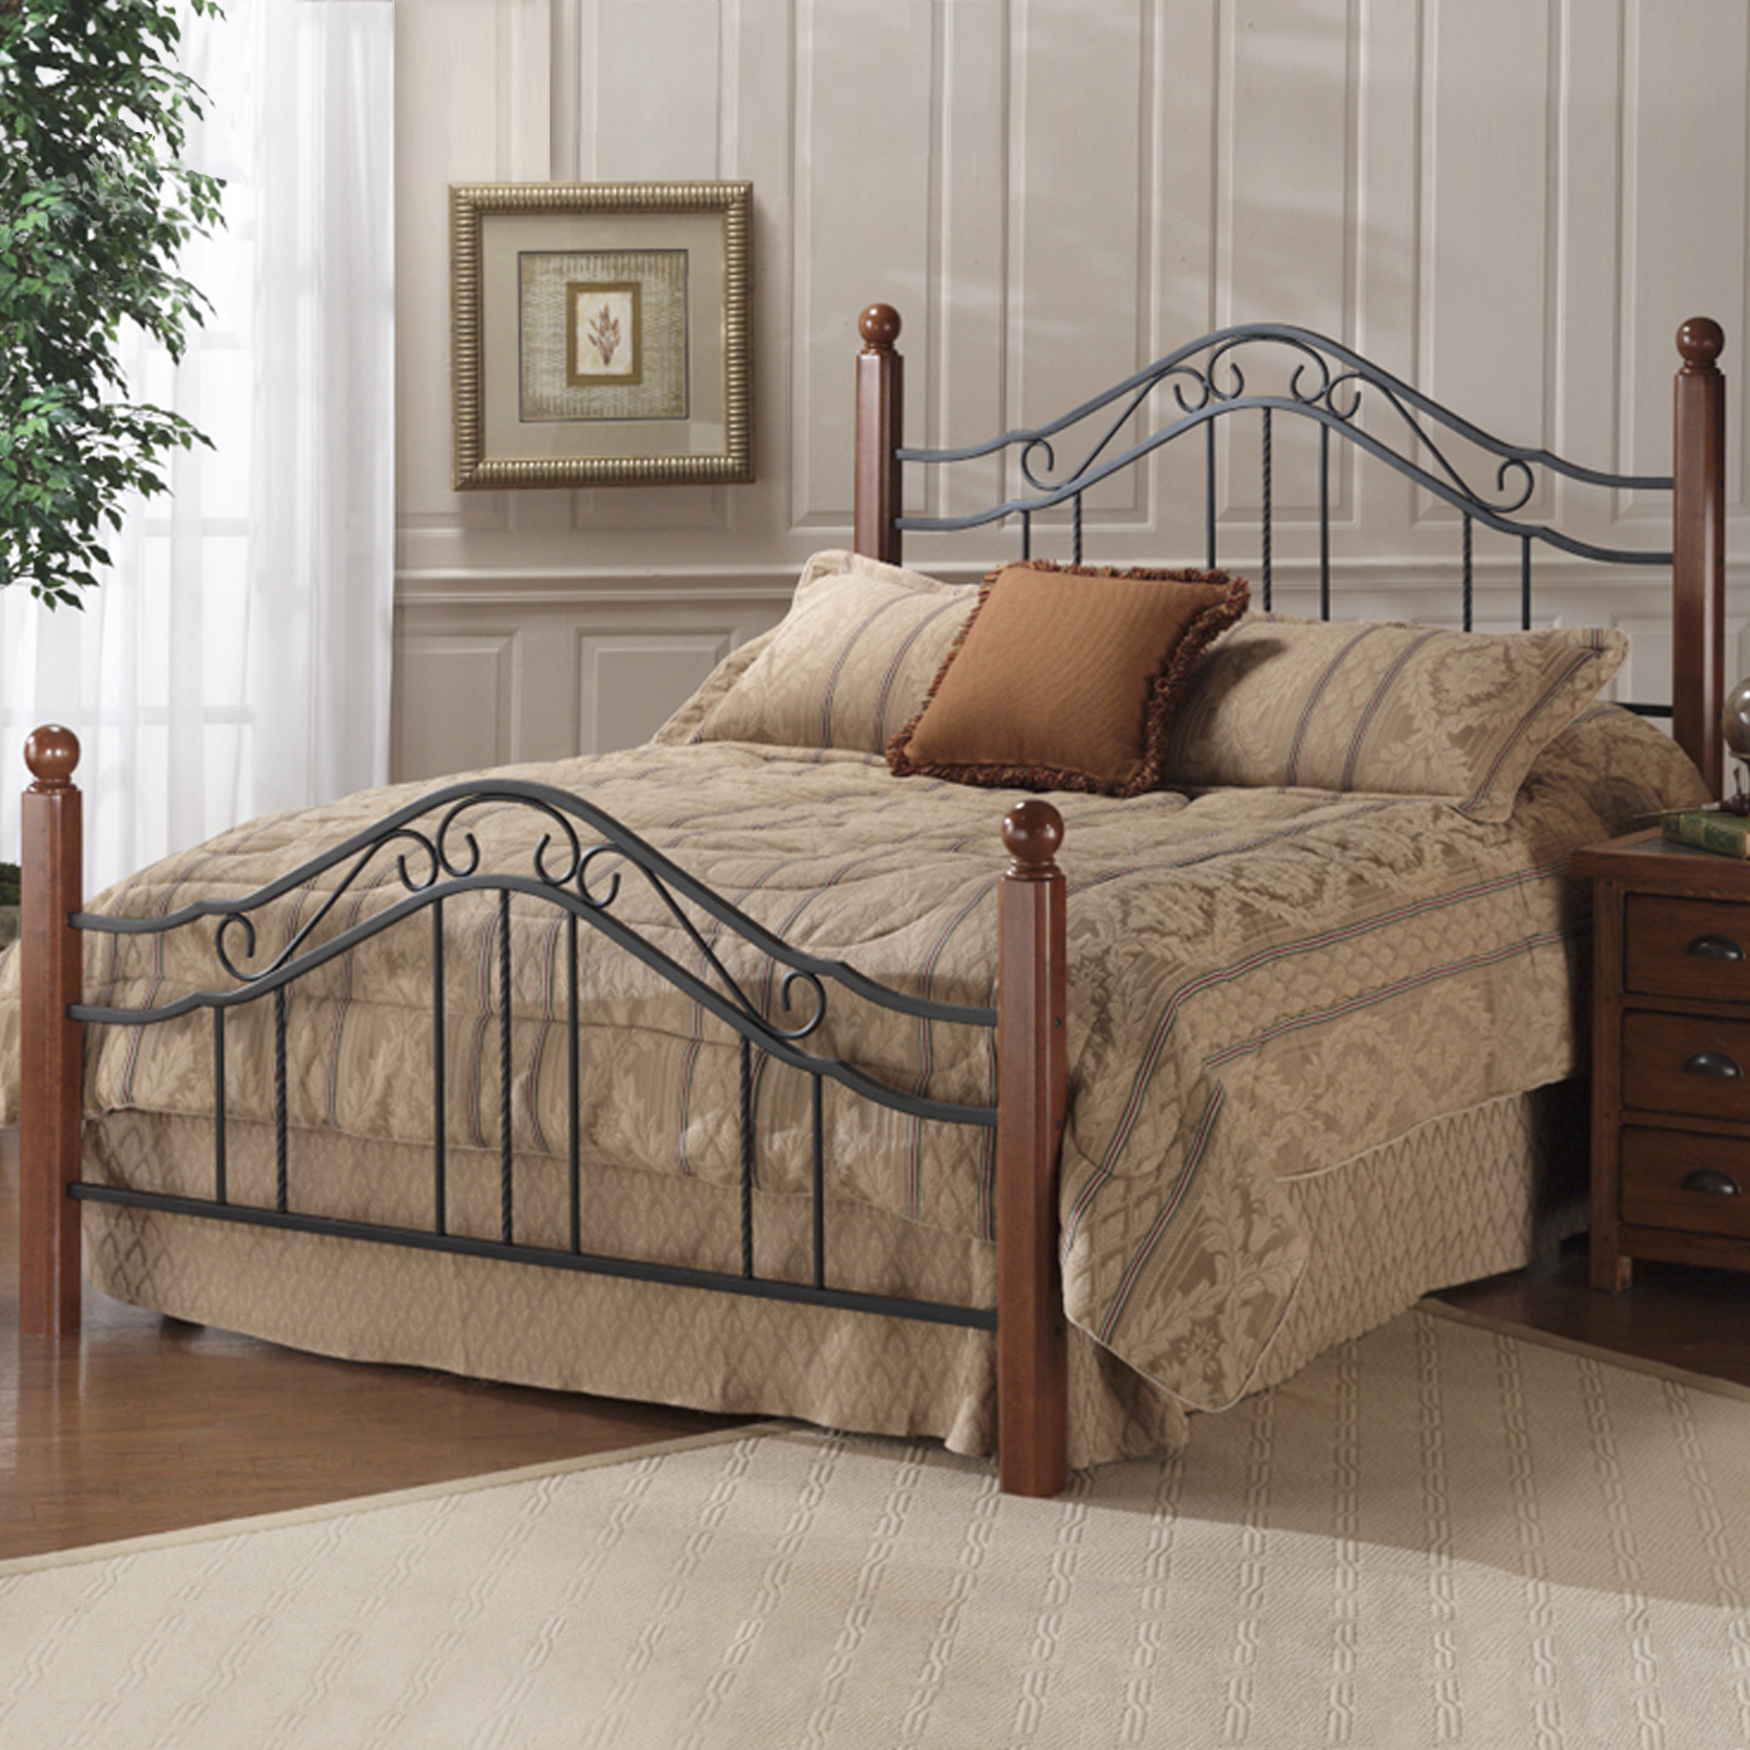 Hillsdale Madison Bed with Bed Frame,